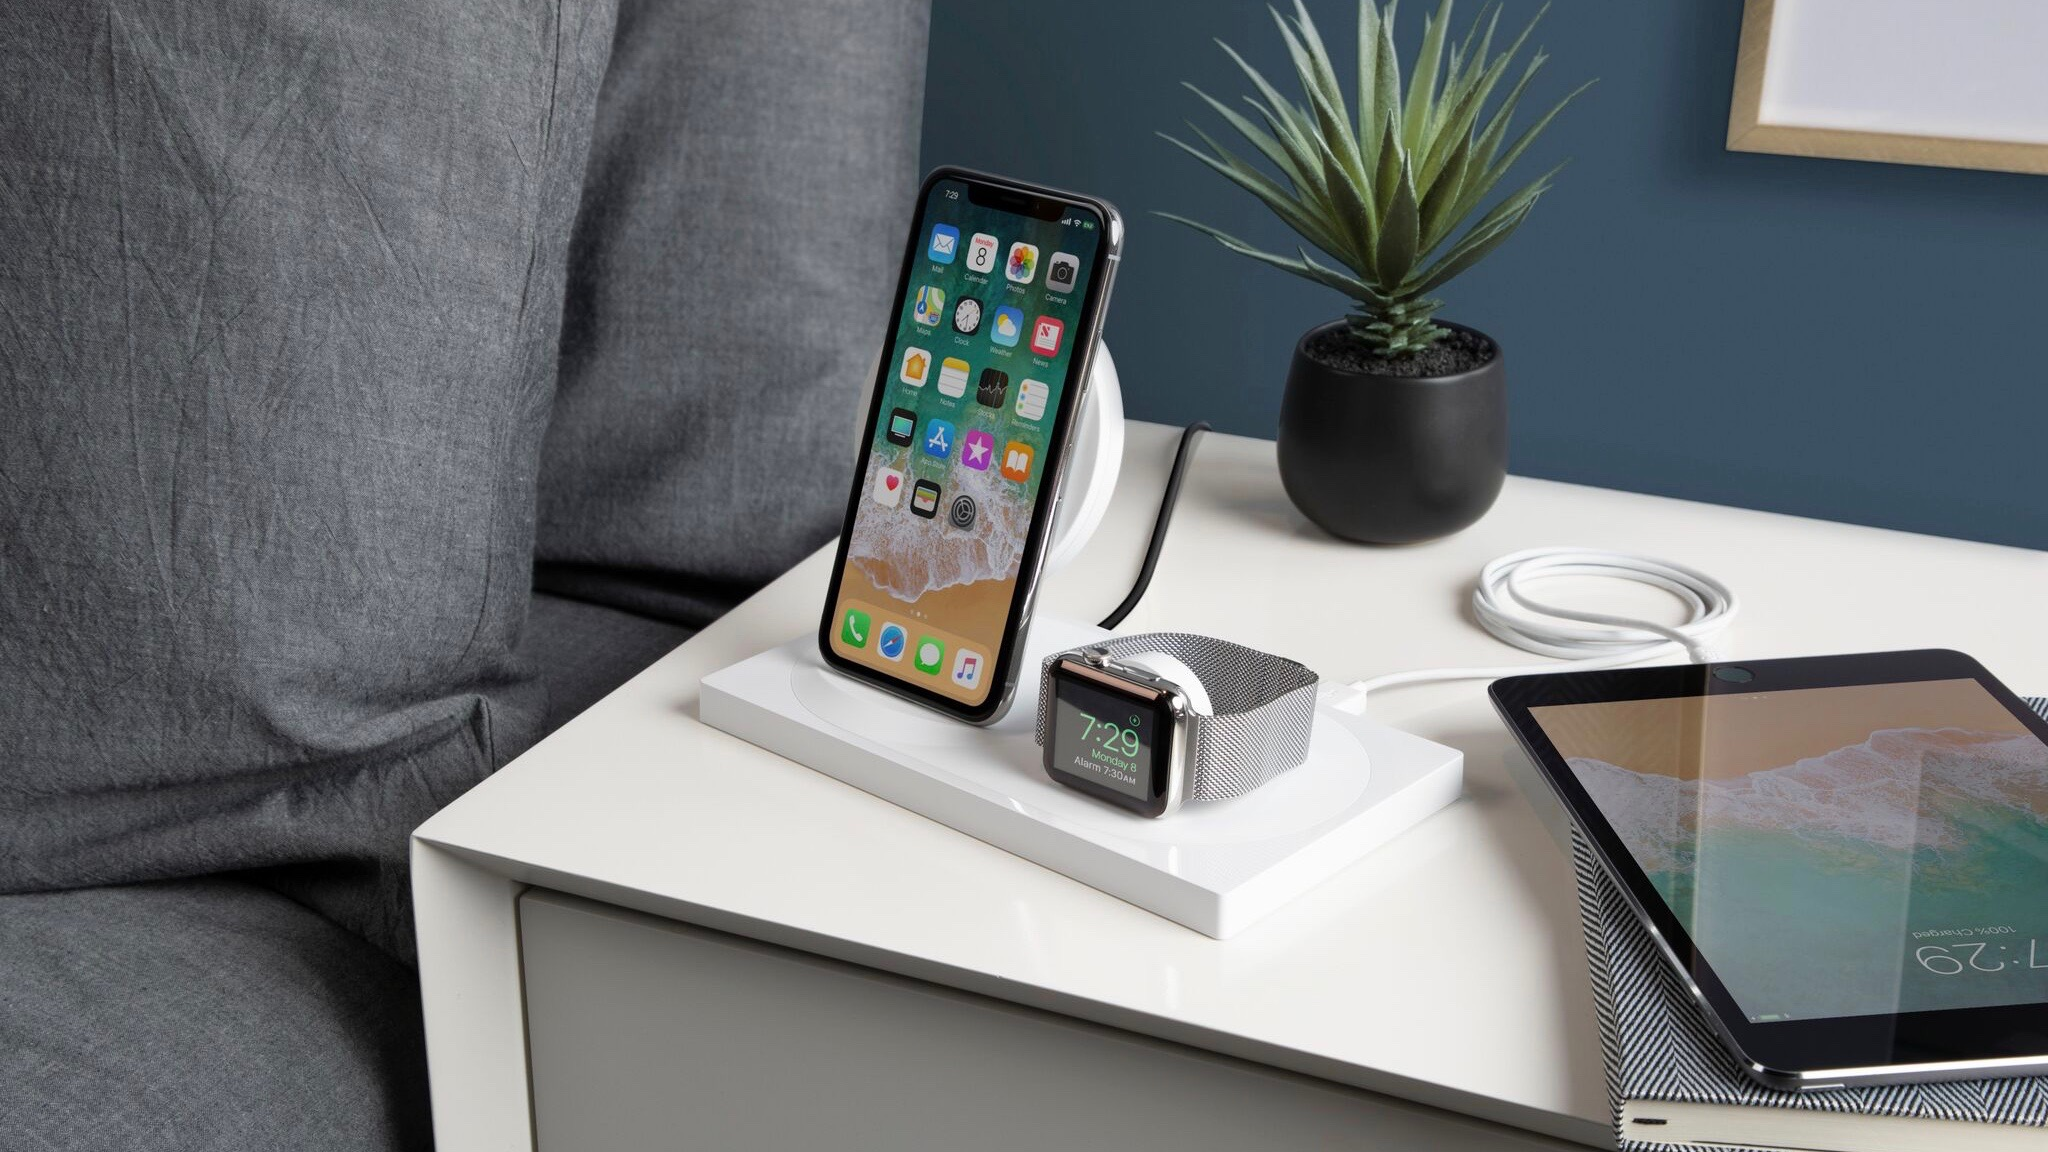 belkin unveils boost up wireless charging dock for iphone apple watch with clean design